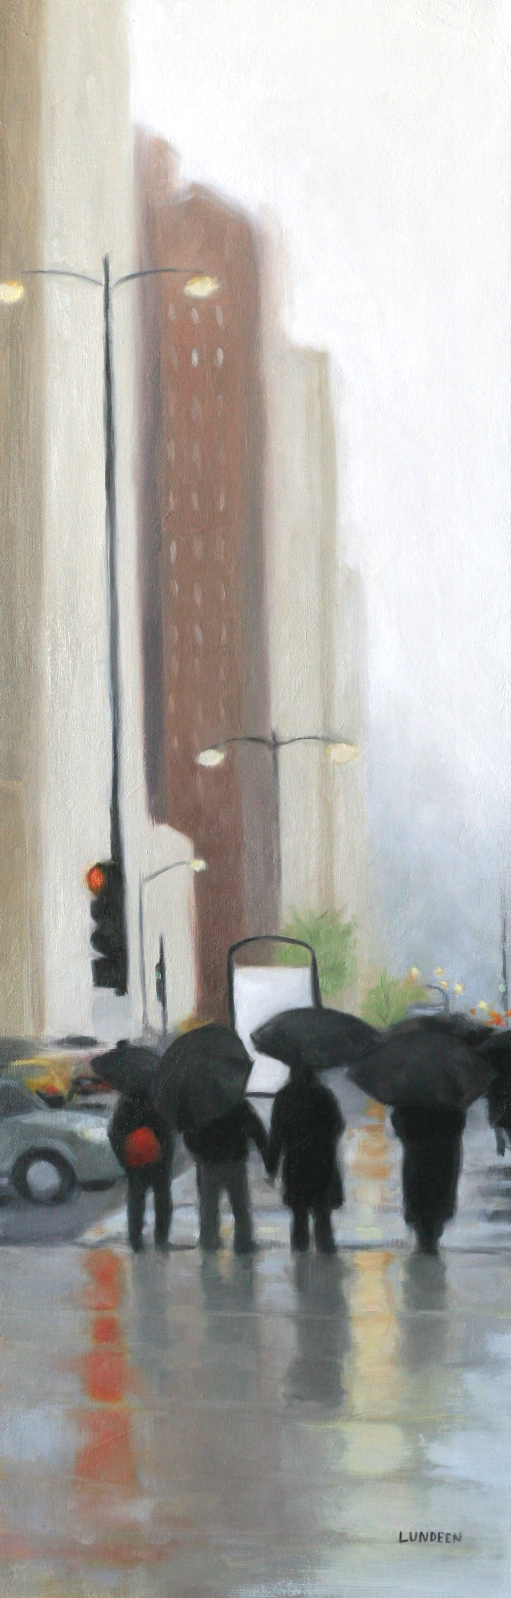 "The Big City - 10""x30"" - SOLD"